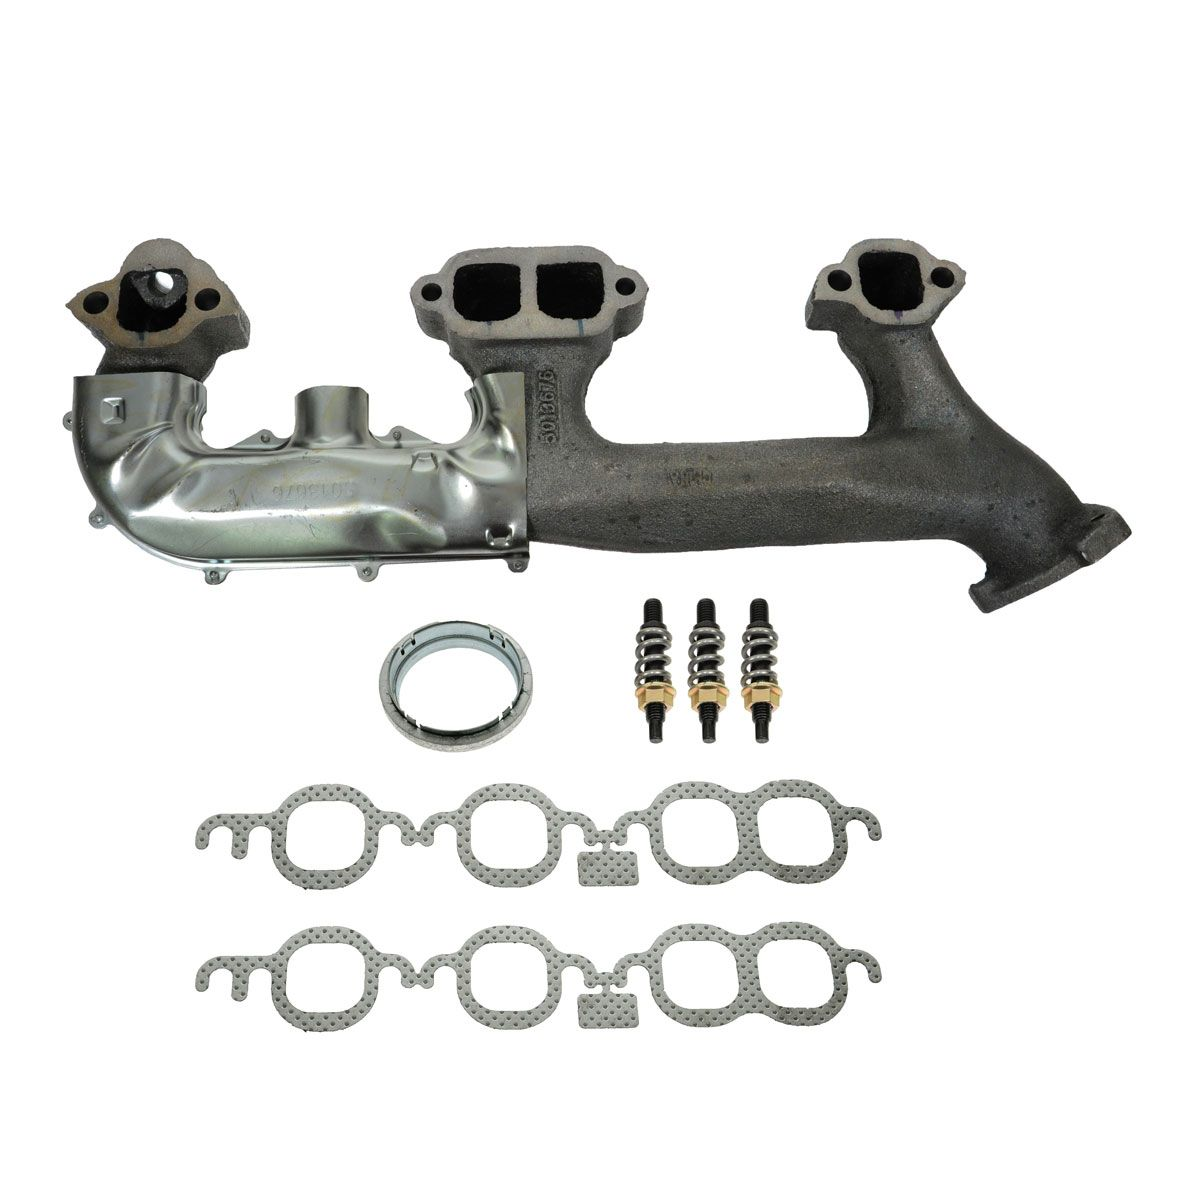 Dorman 674-156 Exhaust Manifold Kit For Chevy GMC Pickup 305 350 Right